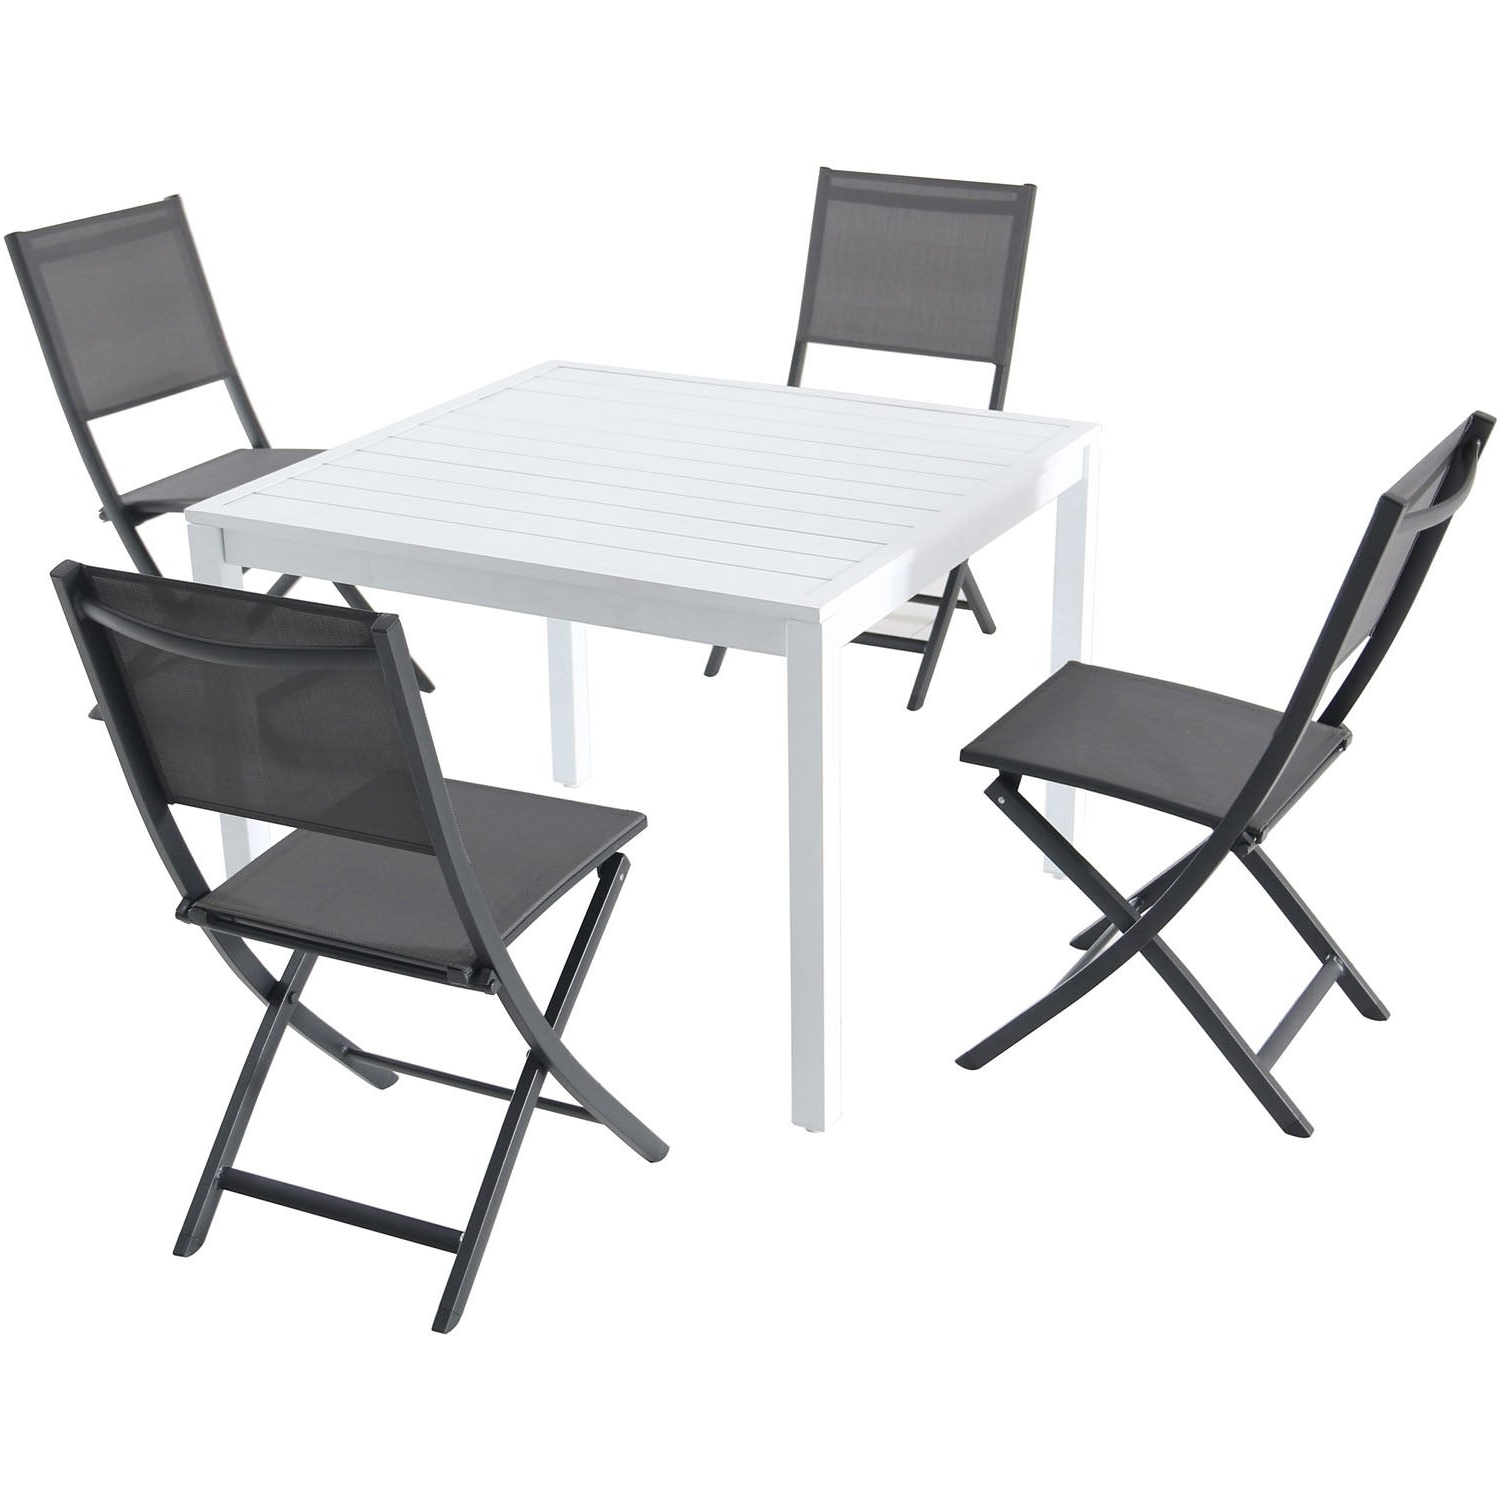 "Delmar 5 Piece Dining Sets In Trendy Hanover Del Mar 5 Piece Outdoor Dining Set With 4 Sling Folding Chairs And A 38"" Square Dining Table (View 16 of 20)"